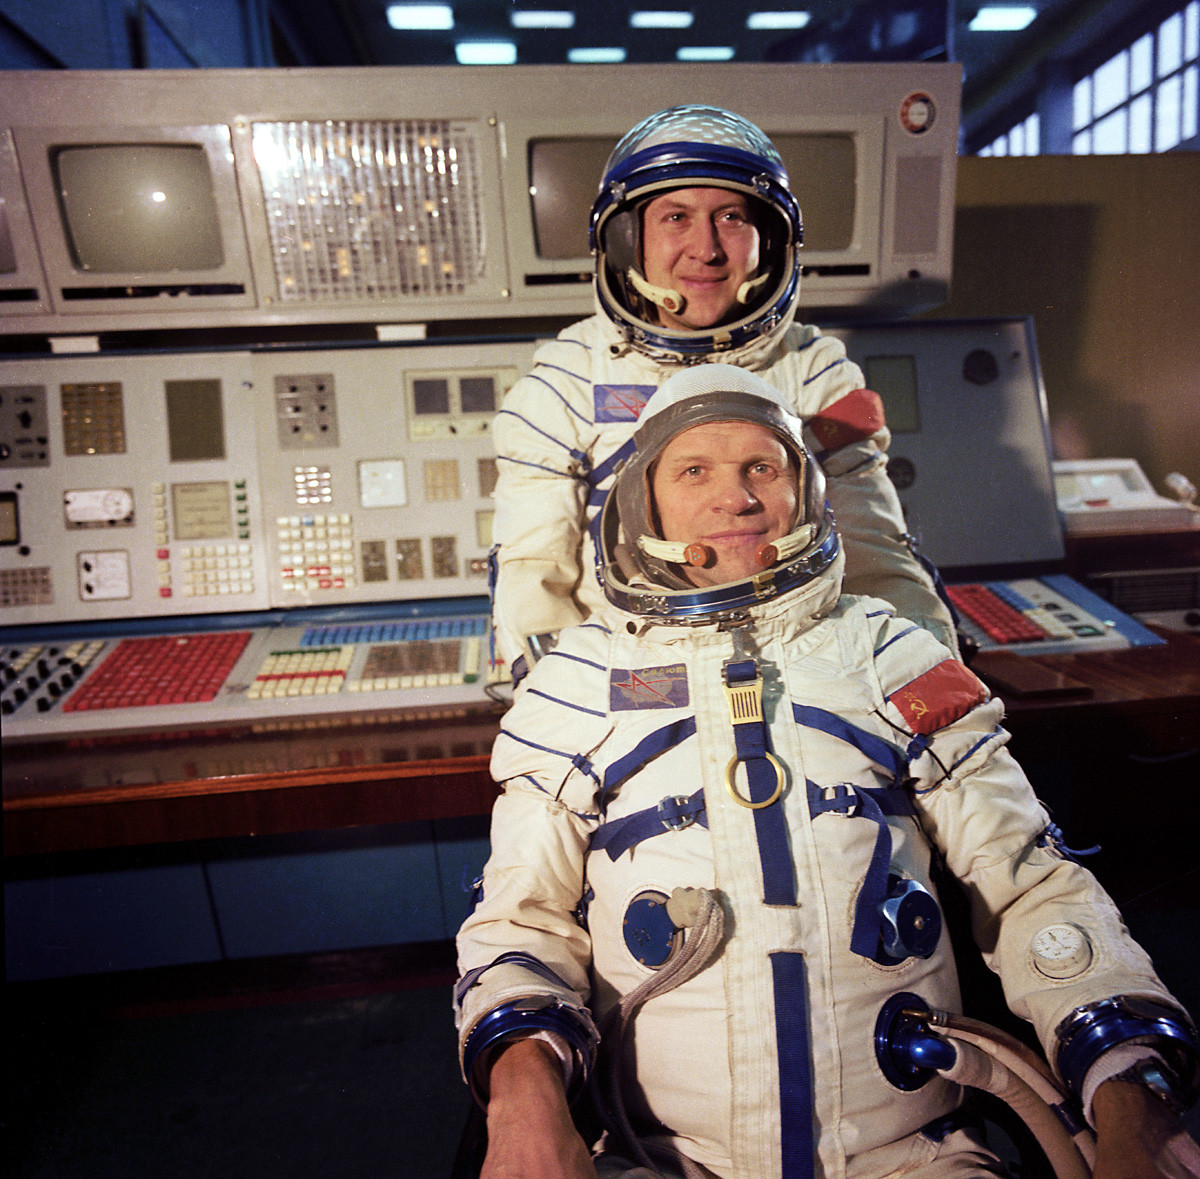 Crew members of the Soyuz 28 international space mission: Vladimír Remek (Czechoslovakia) and Soviet cosmonaut Alexei Gubarev.